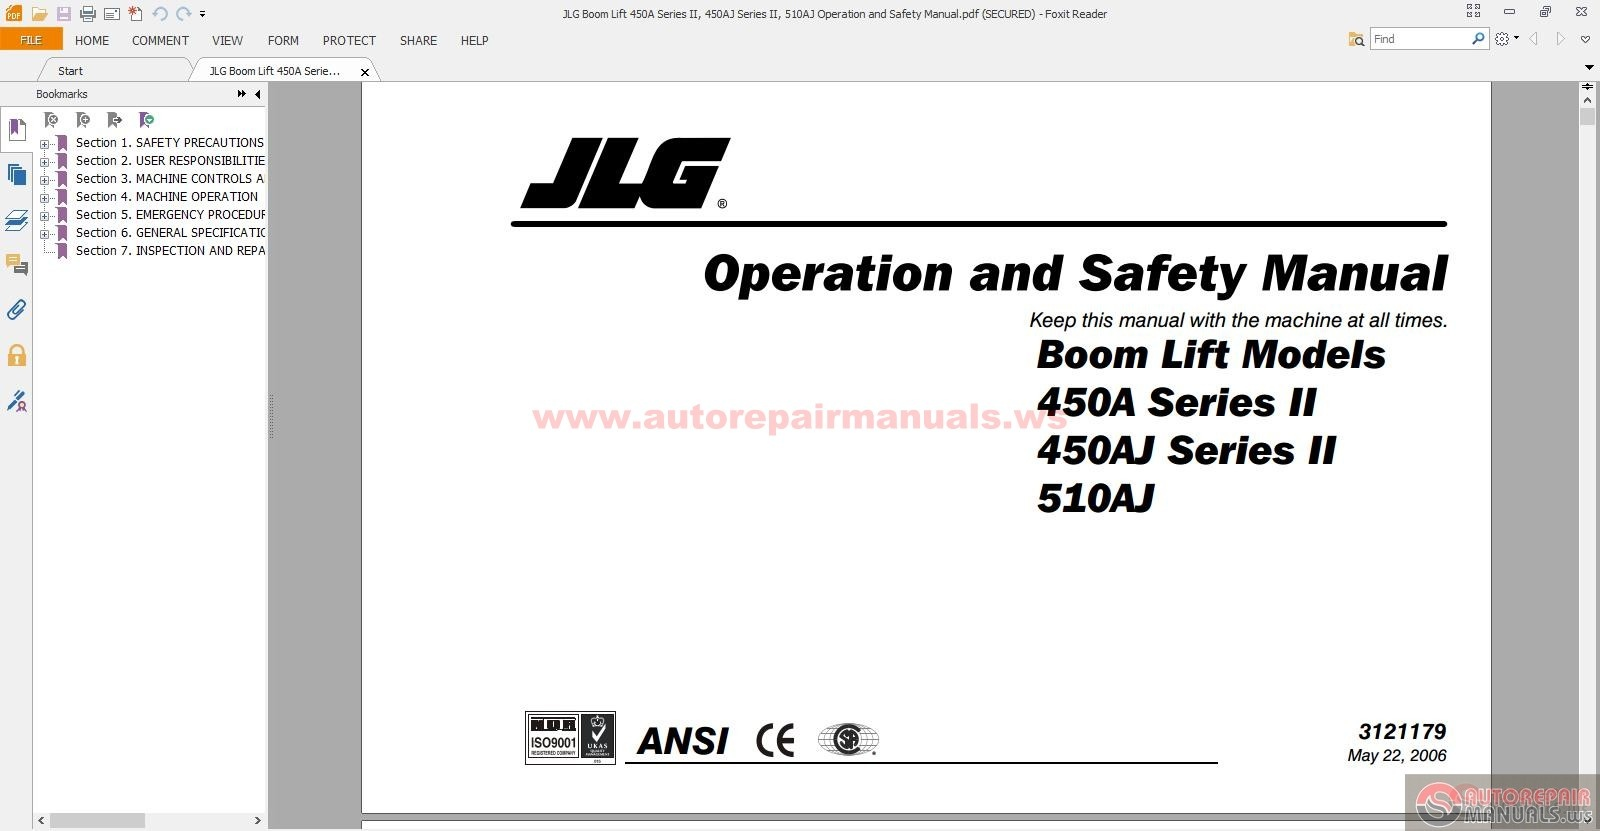 jlg boom lift 450a series ii 450aj series ii 510aj operation and jlg boom lift 450a series ii 450aj series ii 510aj operation and safety manual size 3 45mb language english type pdf pages 112